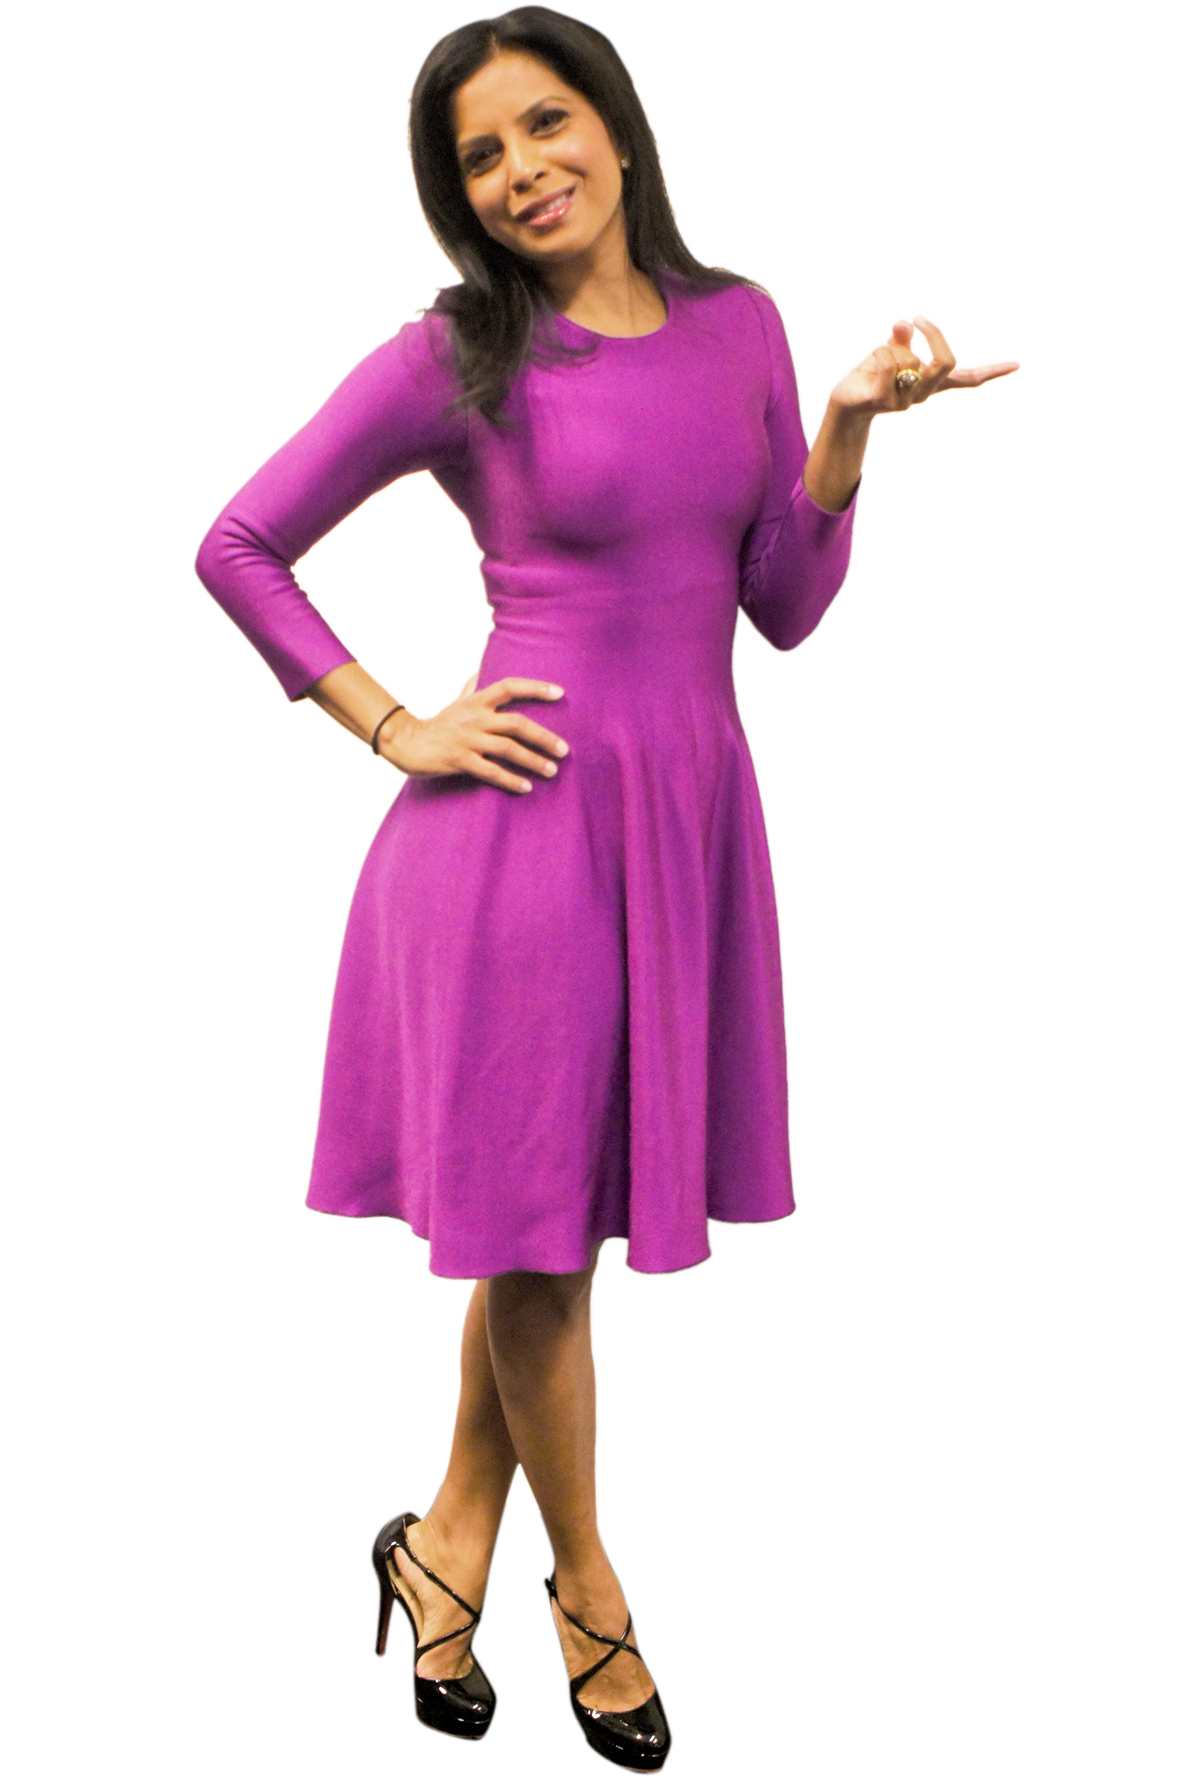 Hitha Herzog  in a purple flouncy dress and black patent Louboutins while on air at Fox News on December 23rd, 2016. Stay tuned for highlights from the show!